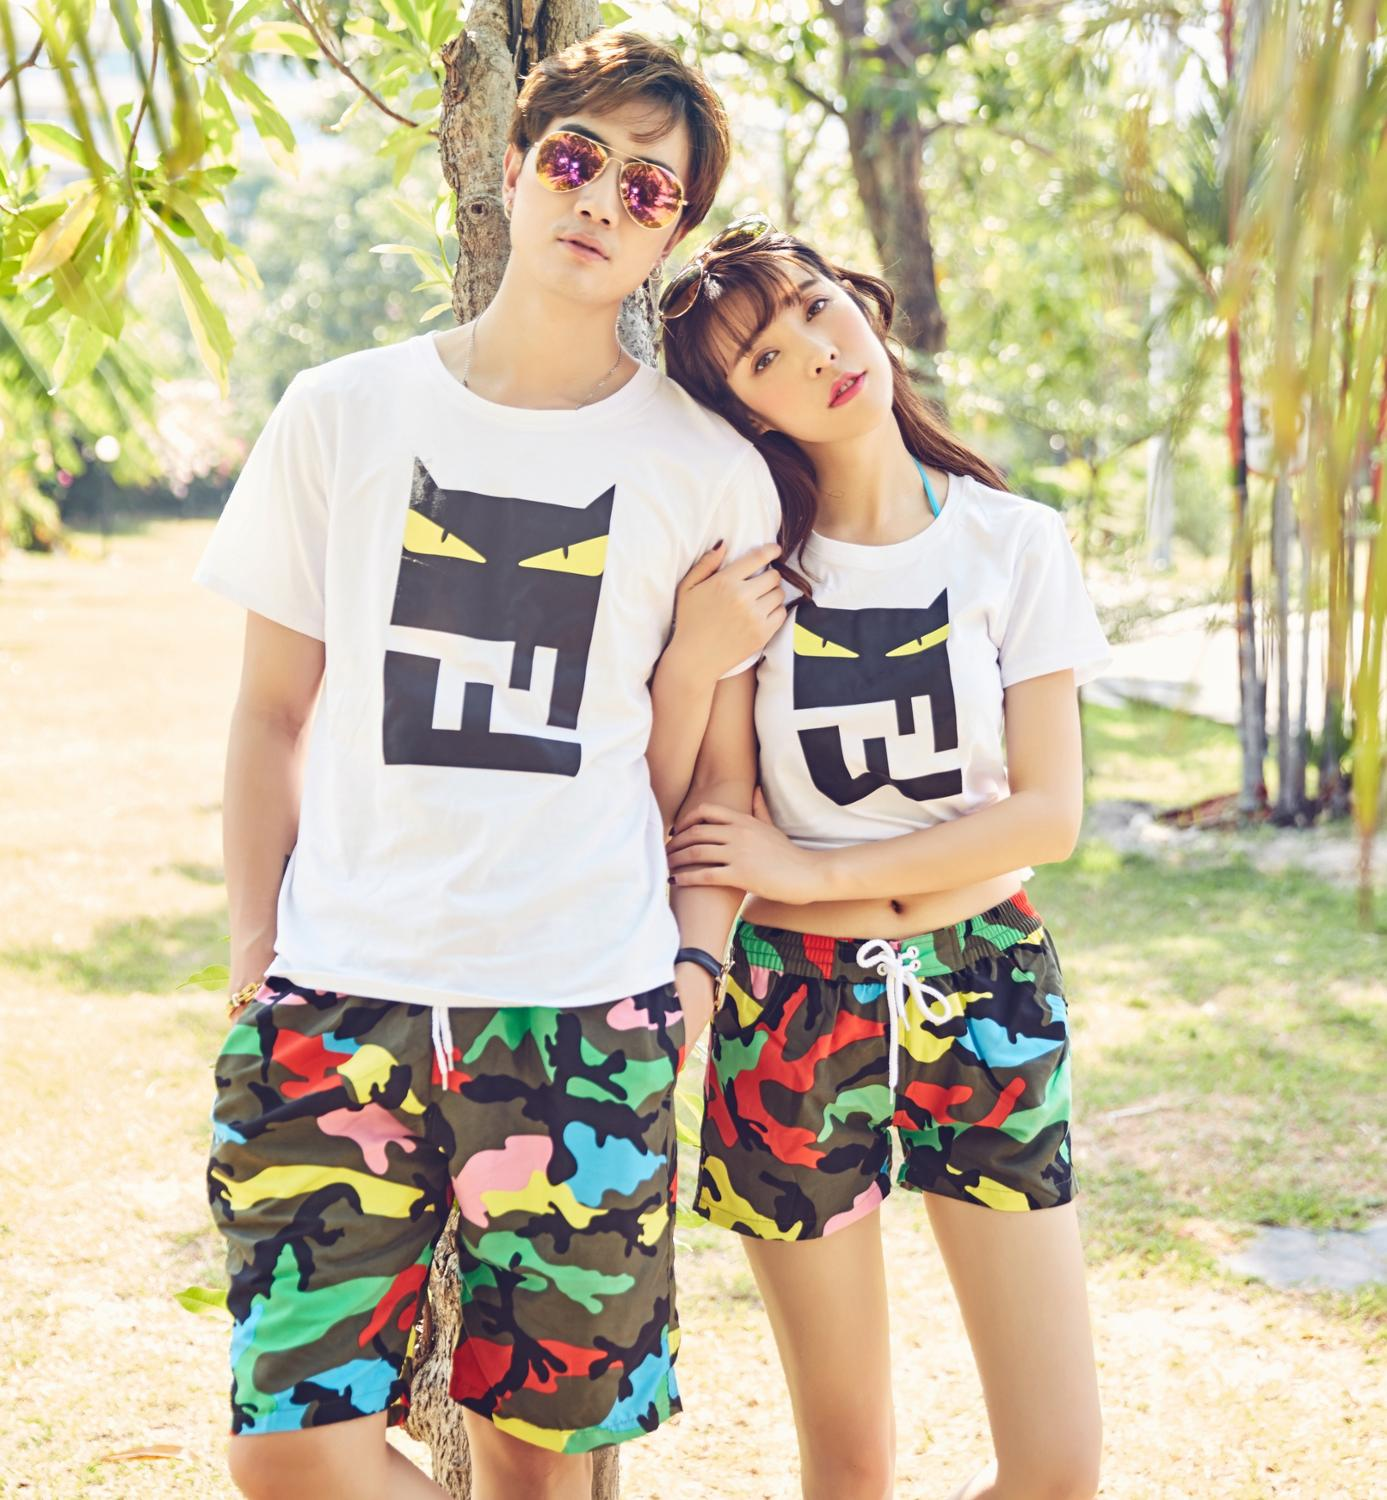 Shorts Loose Swimwear Camouflage-Print Quick-Dry Woman And Colorful Holiday L-2XL Couples